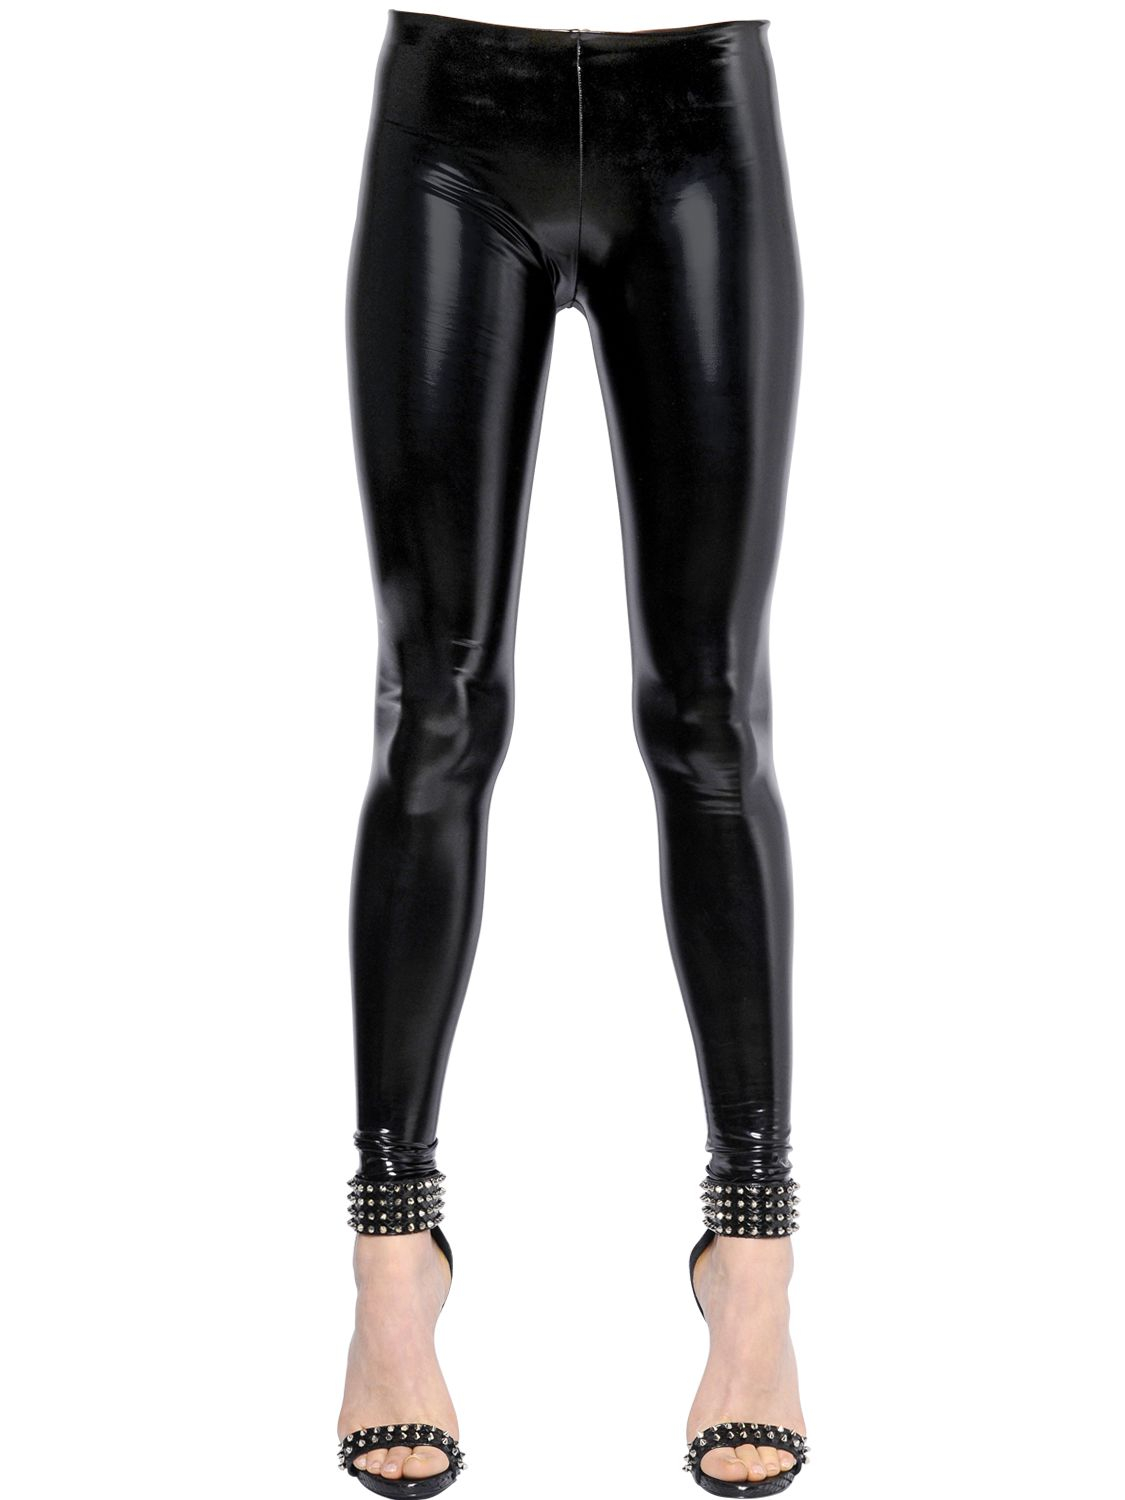 475329436ff392 Gallery. Previously sold at: LUISA VIA ROMA · Women's Leather Leggings